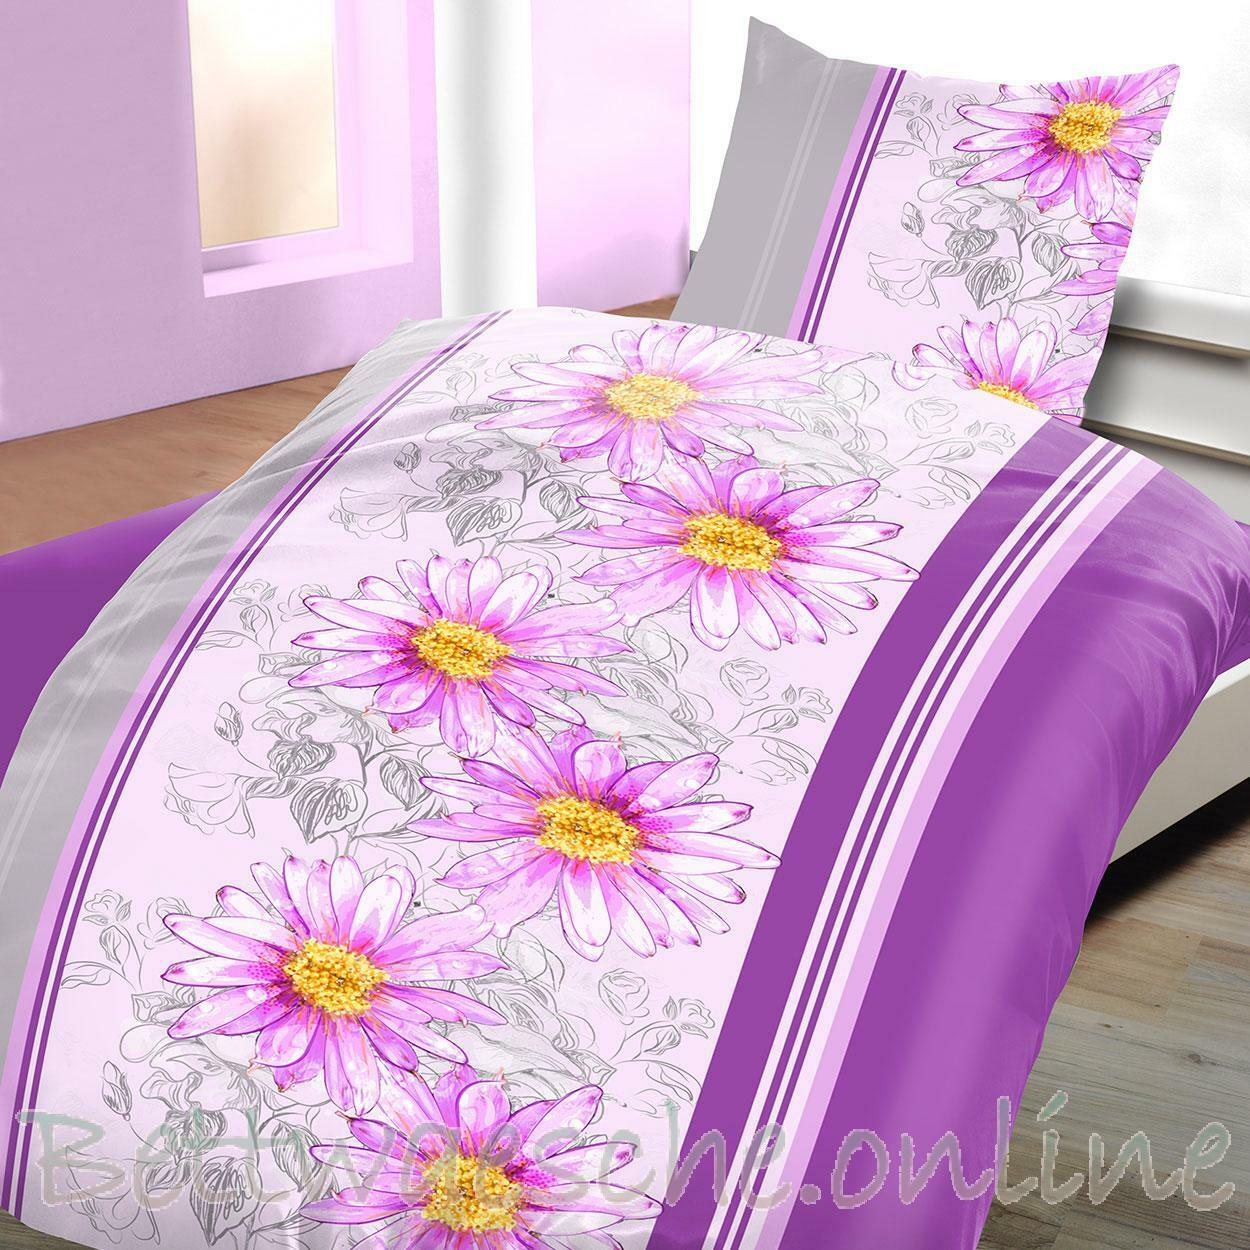 mikrofaser bettw sche 135x200 cm 2 teilig floral blumen streifen violett eur 7 95 picclick de. Black Bedroom Furniture Sets. Home Design Ideas